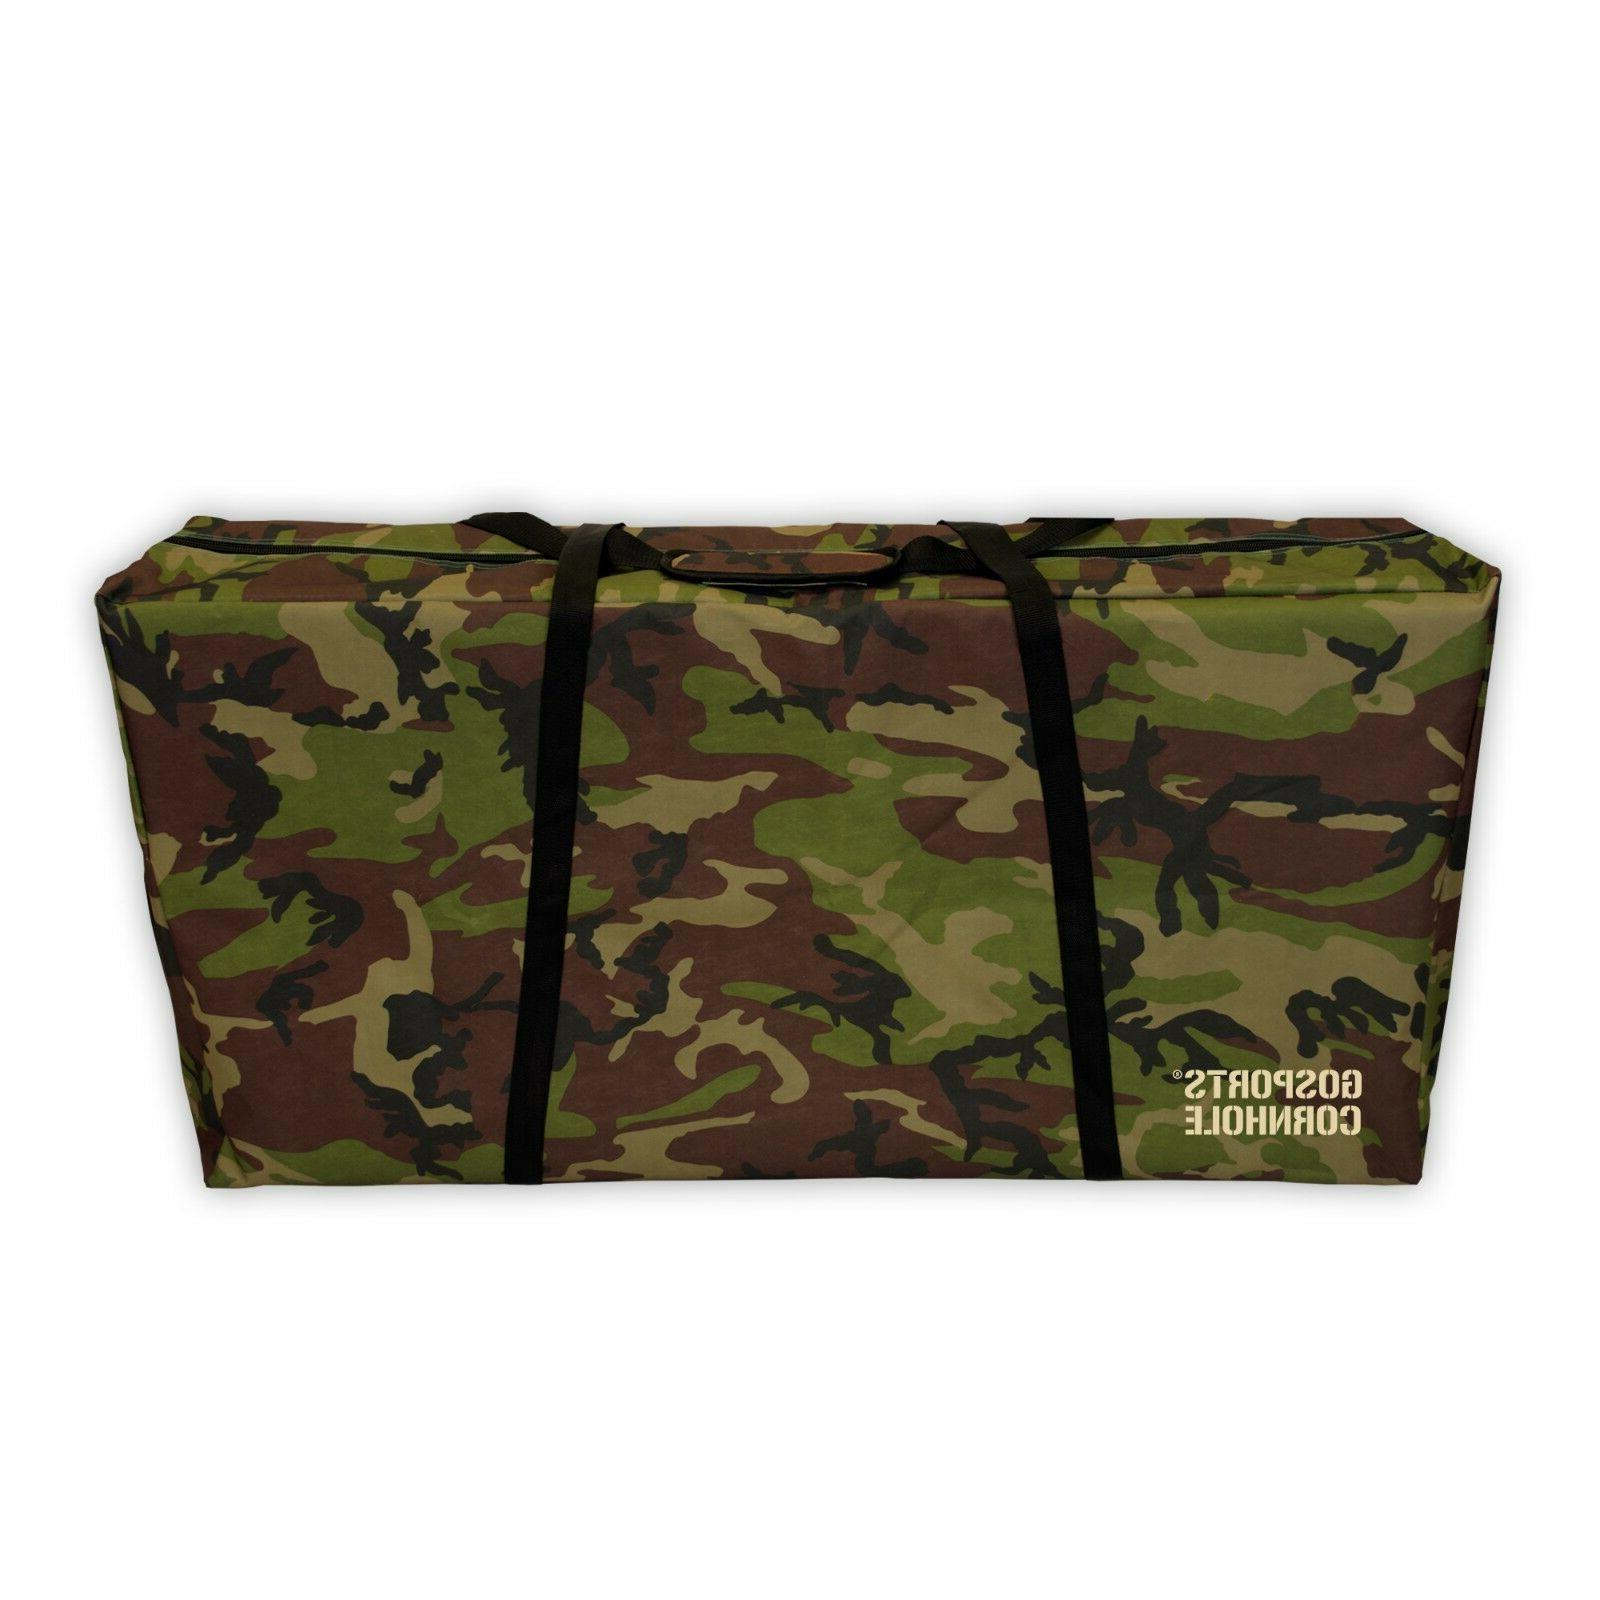 GoSports Regulation Size Camo Cornhole Carrying Case